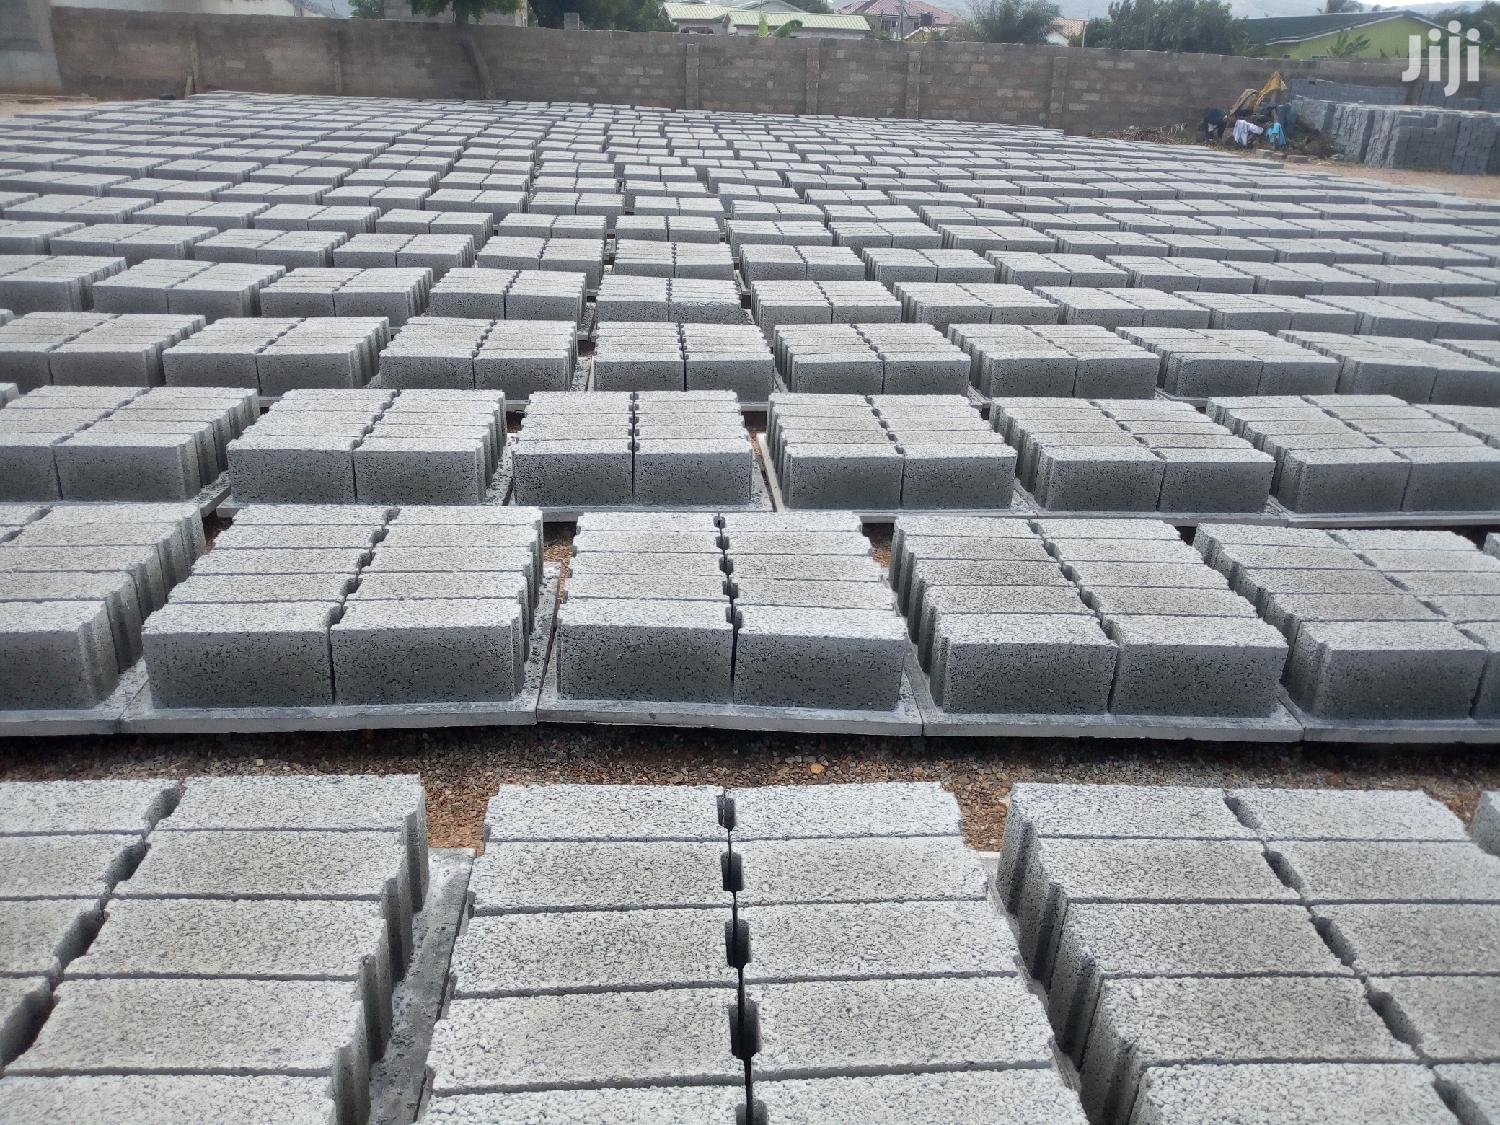 Quality Concrete Interlocking and Pavement Blocks for Sale | Building Materials for sale in Madina, Greater Accra, Ghana